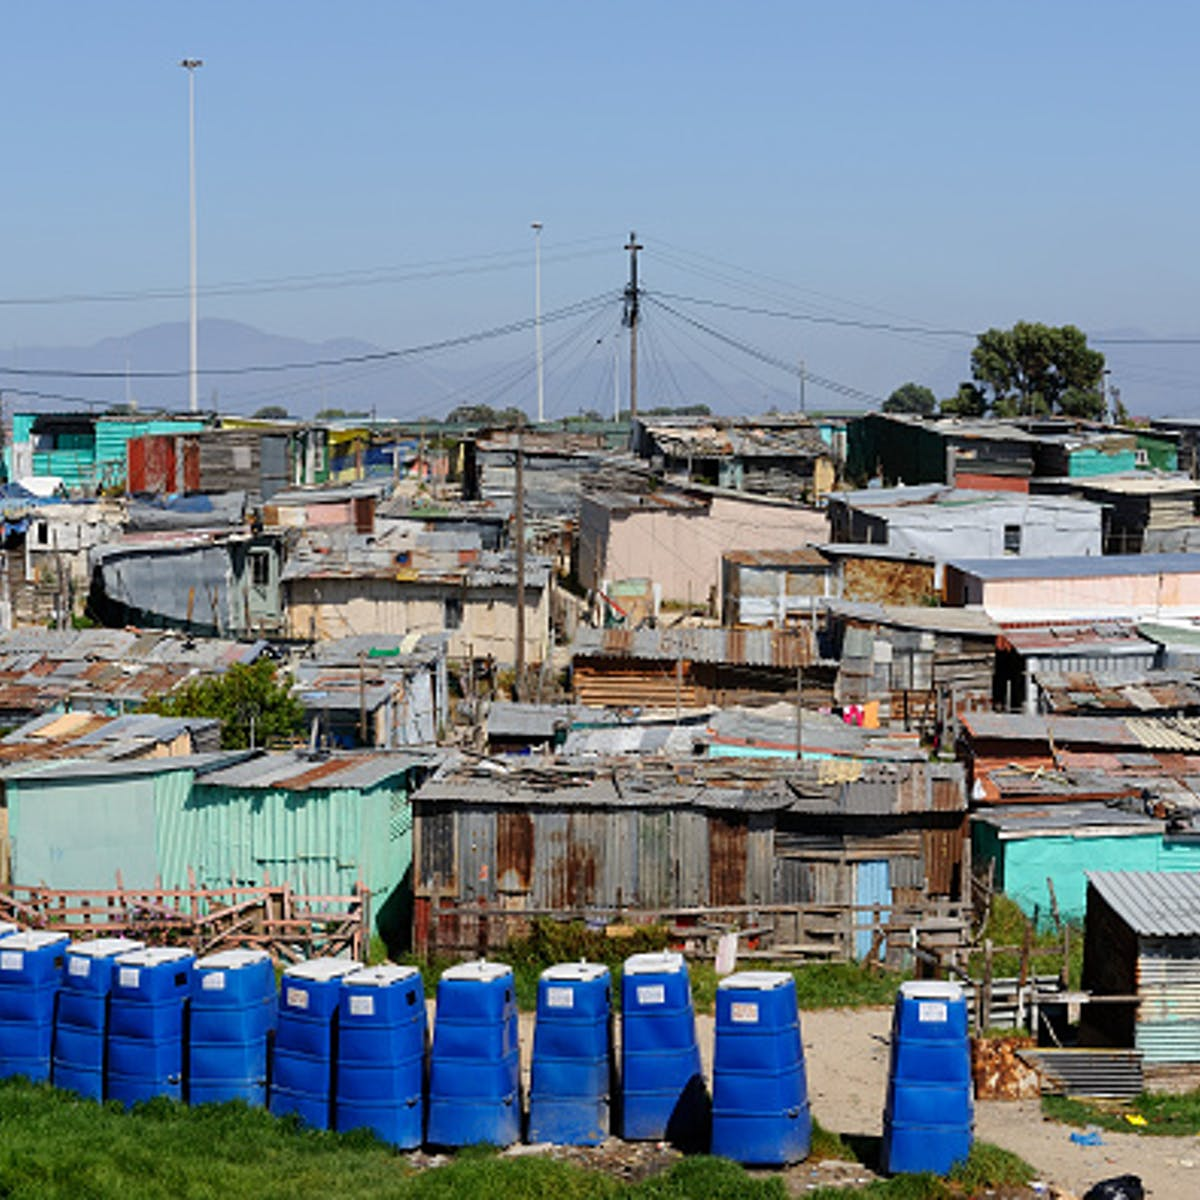 South Africa is failing on COVID-19 because its leaders want to emulate the  First World